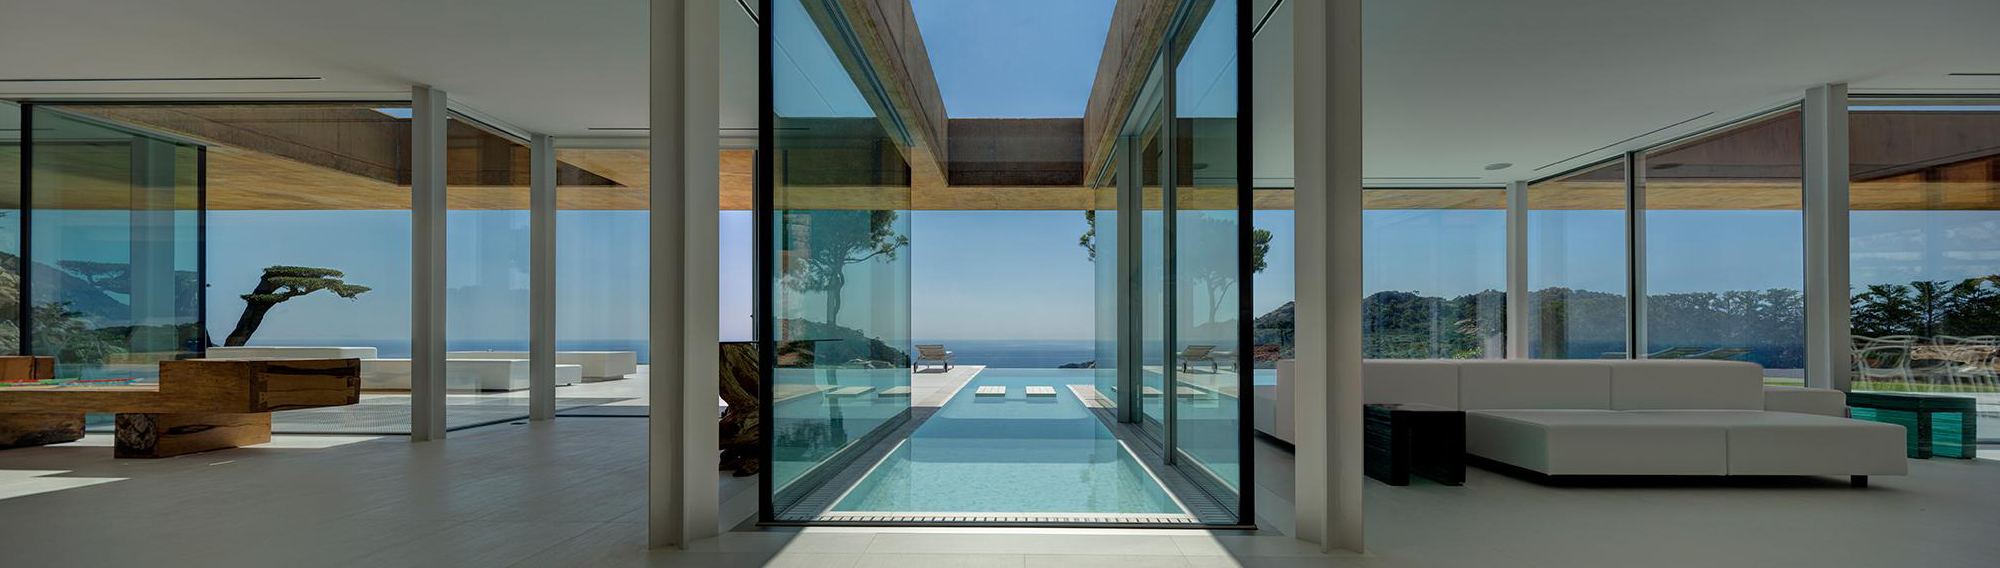 Vitrocsa Swimms Range - The Certified UK Partner of Vitrocsa Minimal Windows